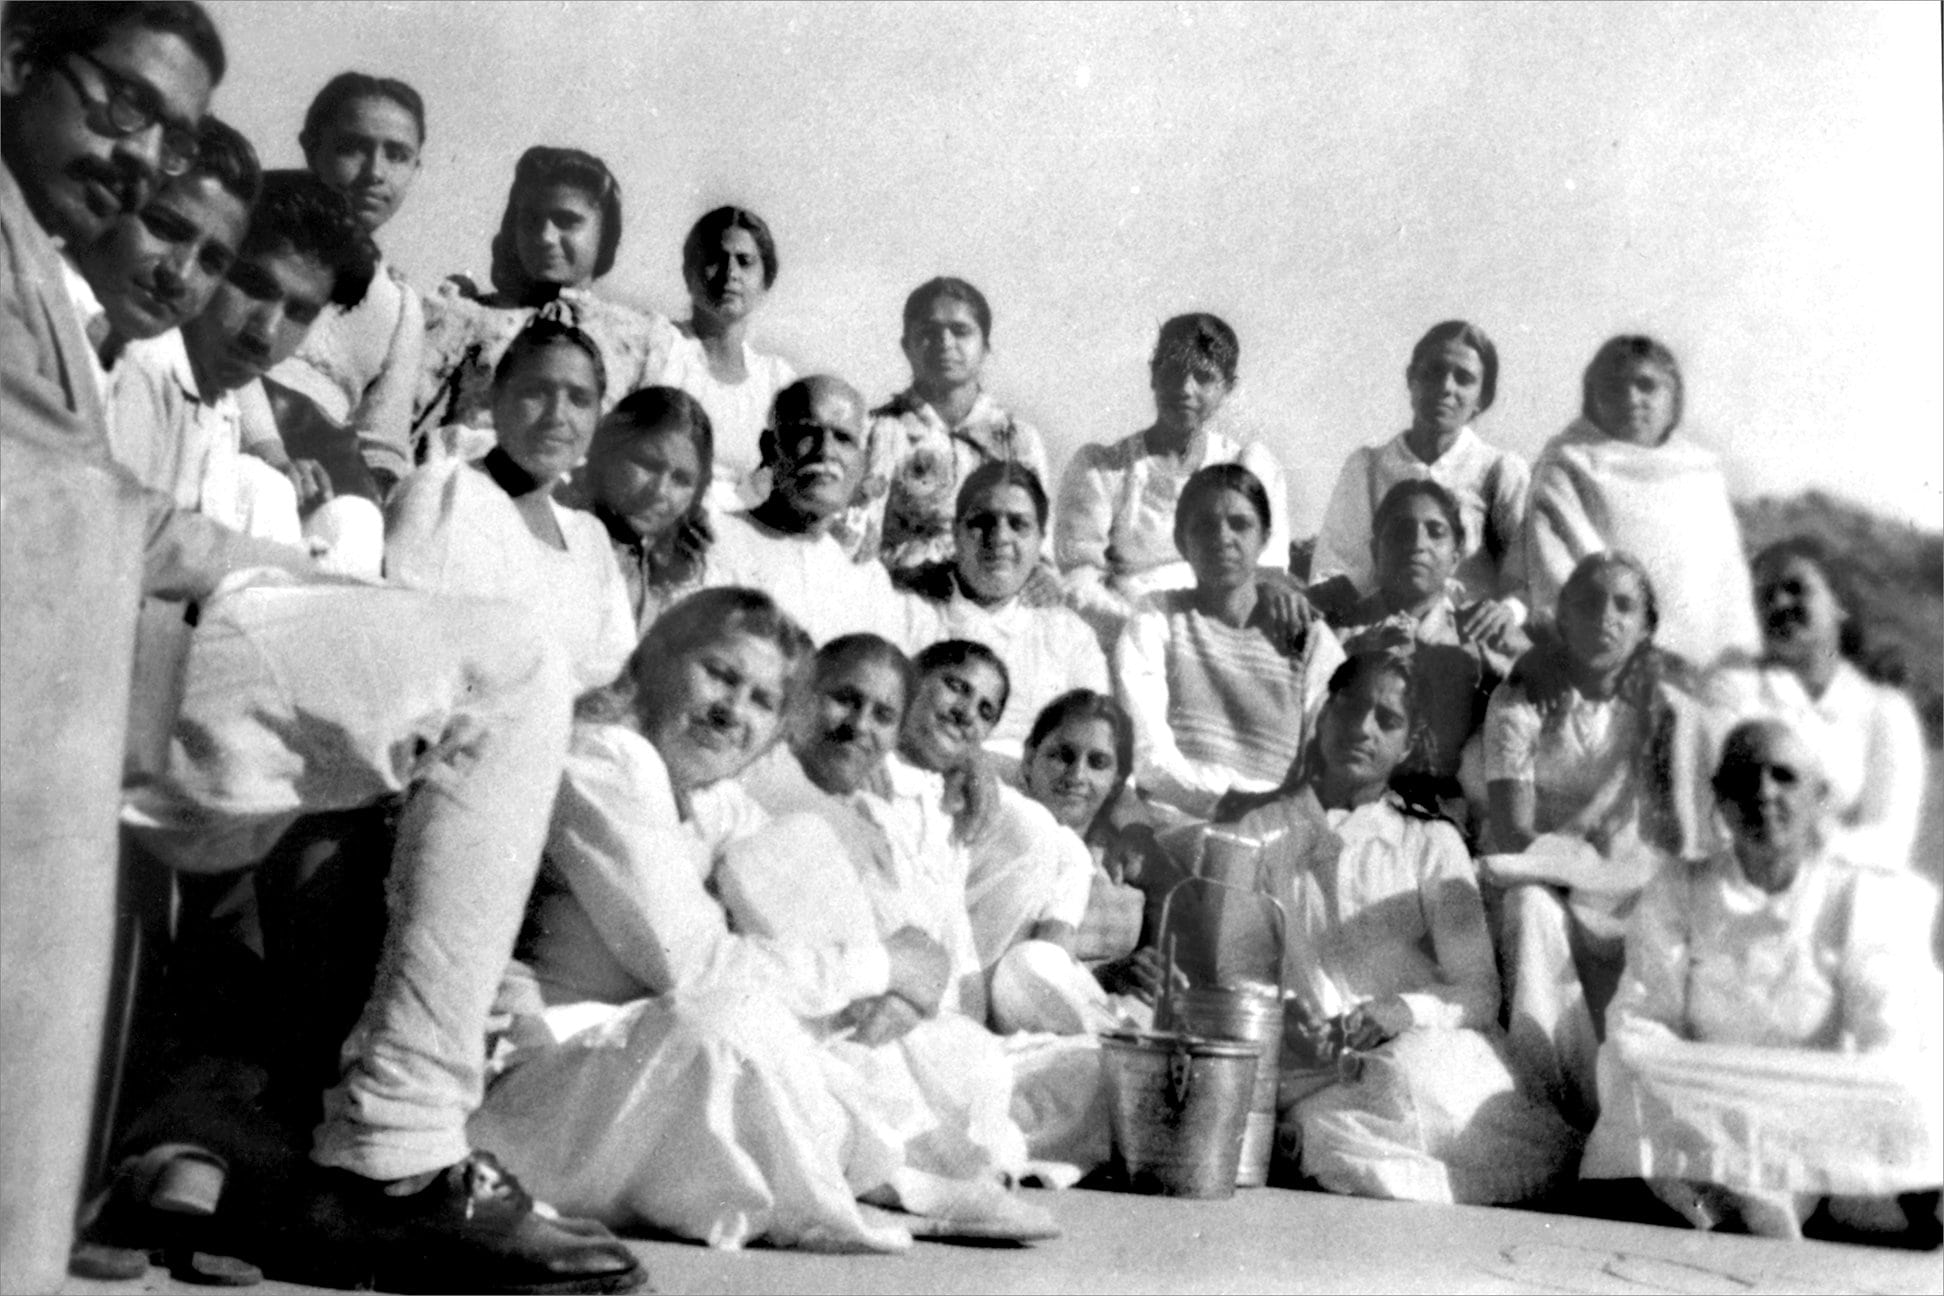 Old Yagya image of Brahma Kumaris